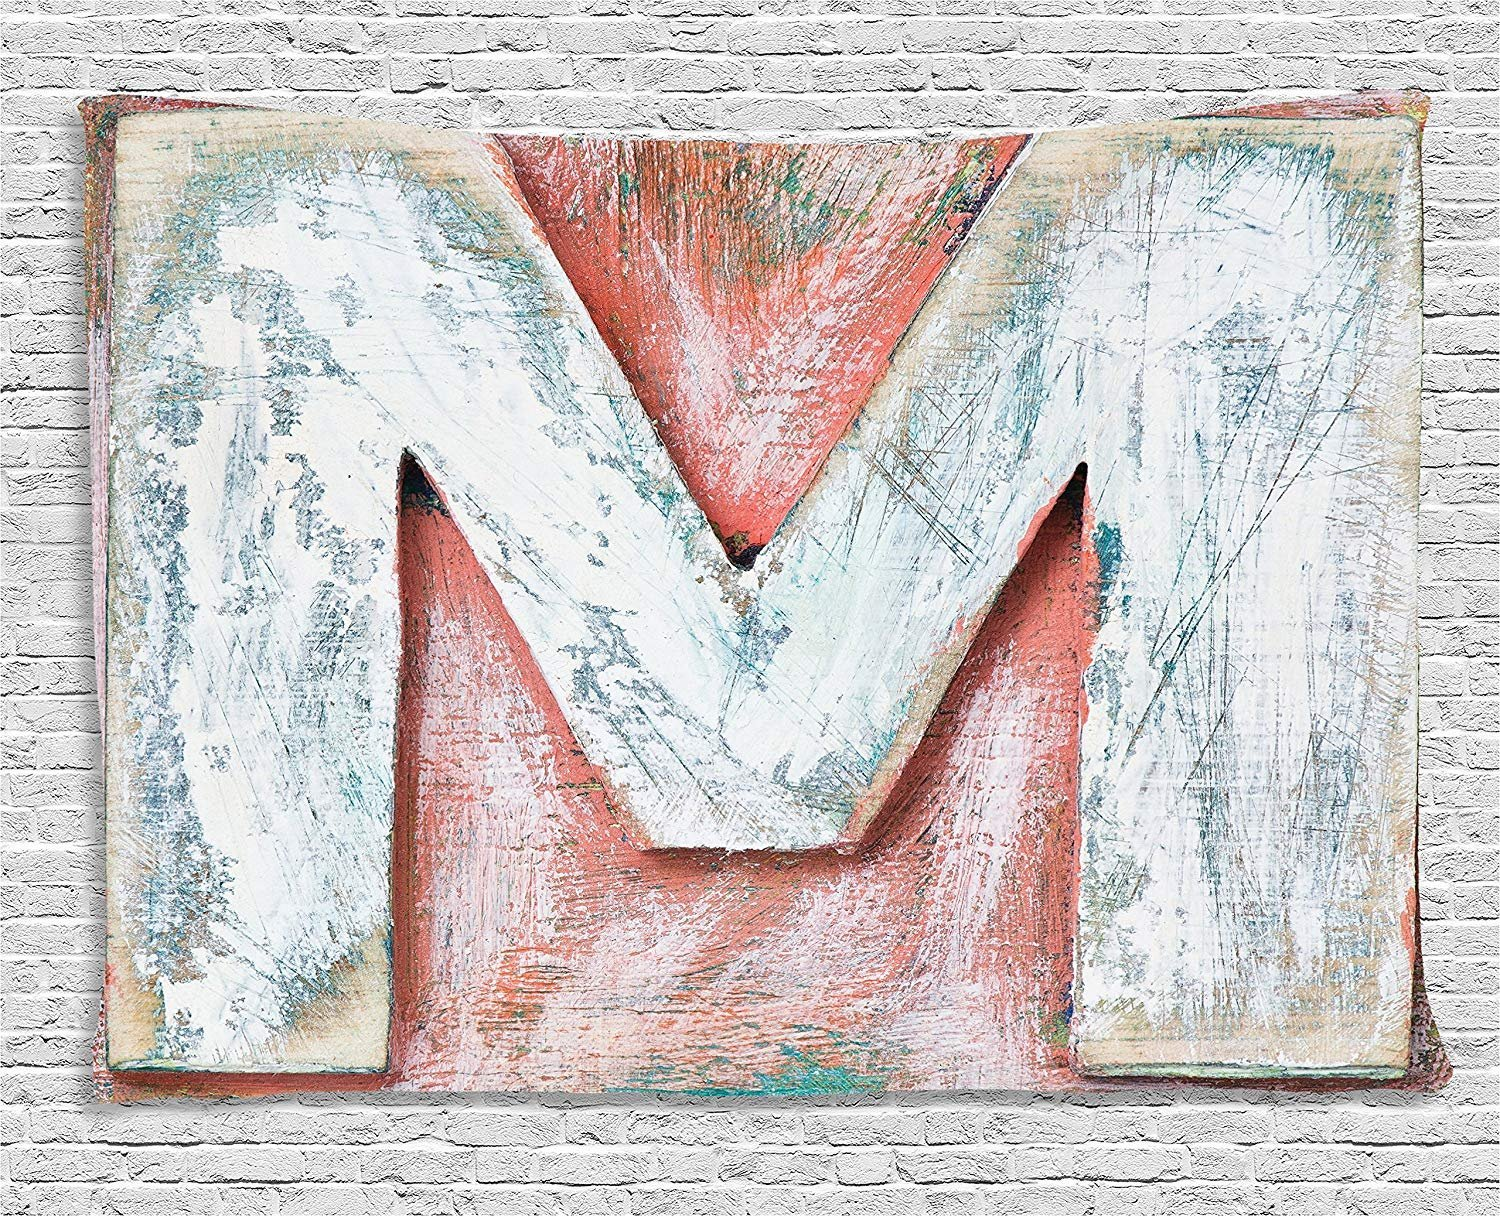 XHFITCLtd Letter M Tapestry, Old Wood Capital Letter M Natural Worn Out Look Texture Language Image, Wall Hanging for Bedroom Living Room Dorm, 80 W X 60 L Inches, Coral White Cream by XHFITCLtd (Image #1)